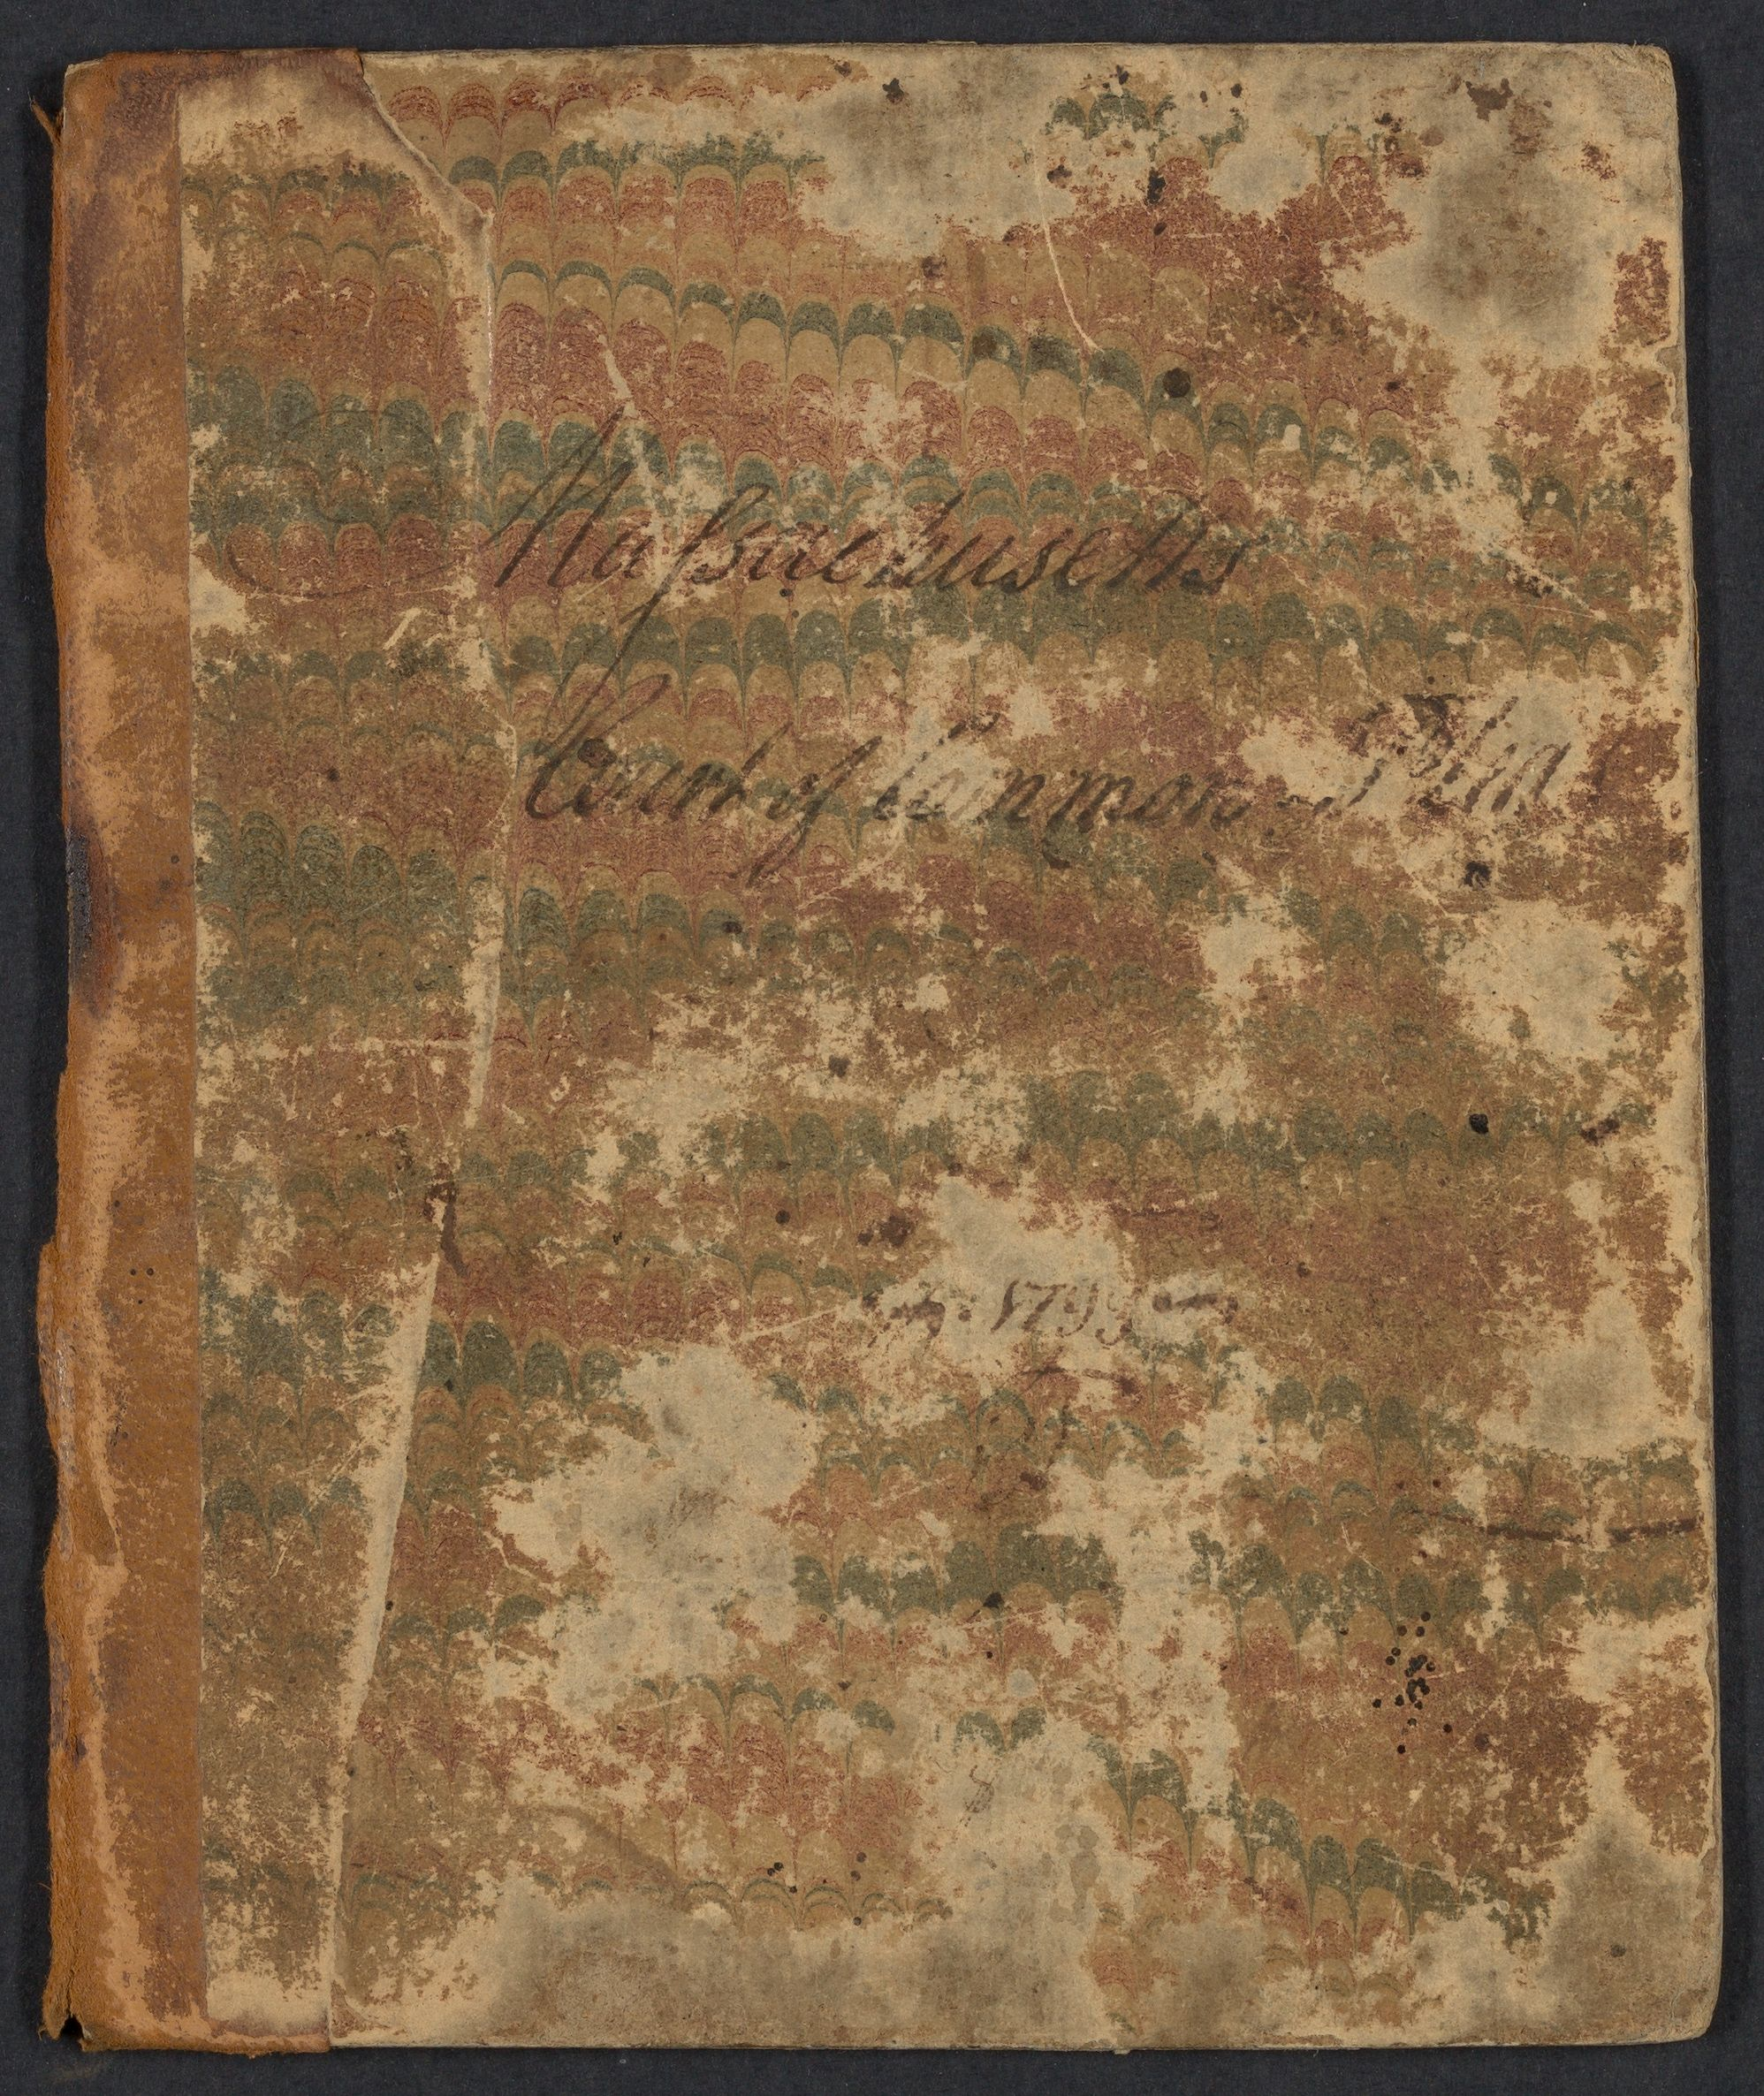 Docket and fees book / 1791-1797